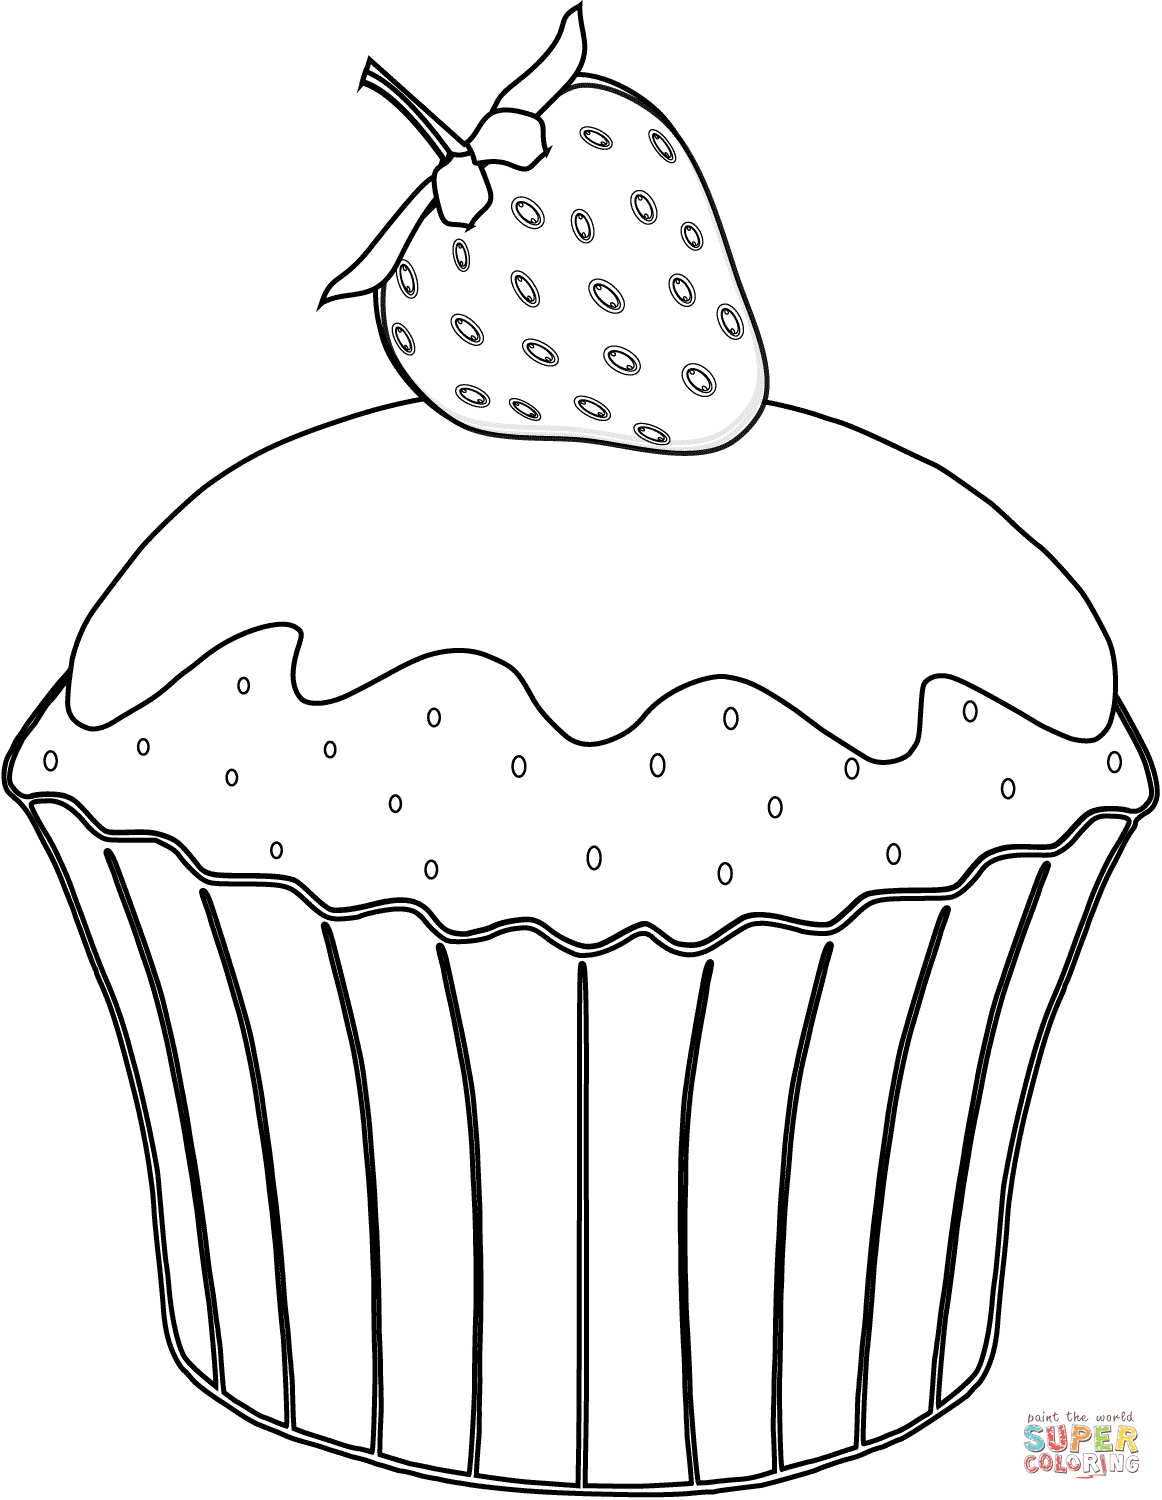 Cupcake Silhouettes Google Search Cupcake Coloring Pages Art Drawings For Kids Coloring Pages